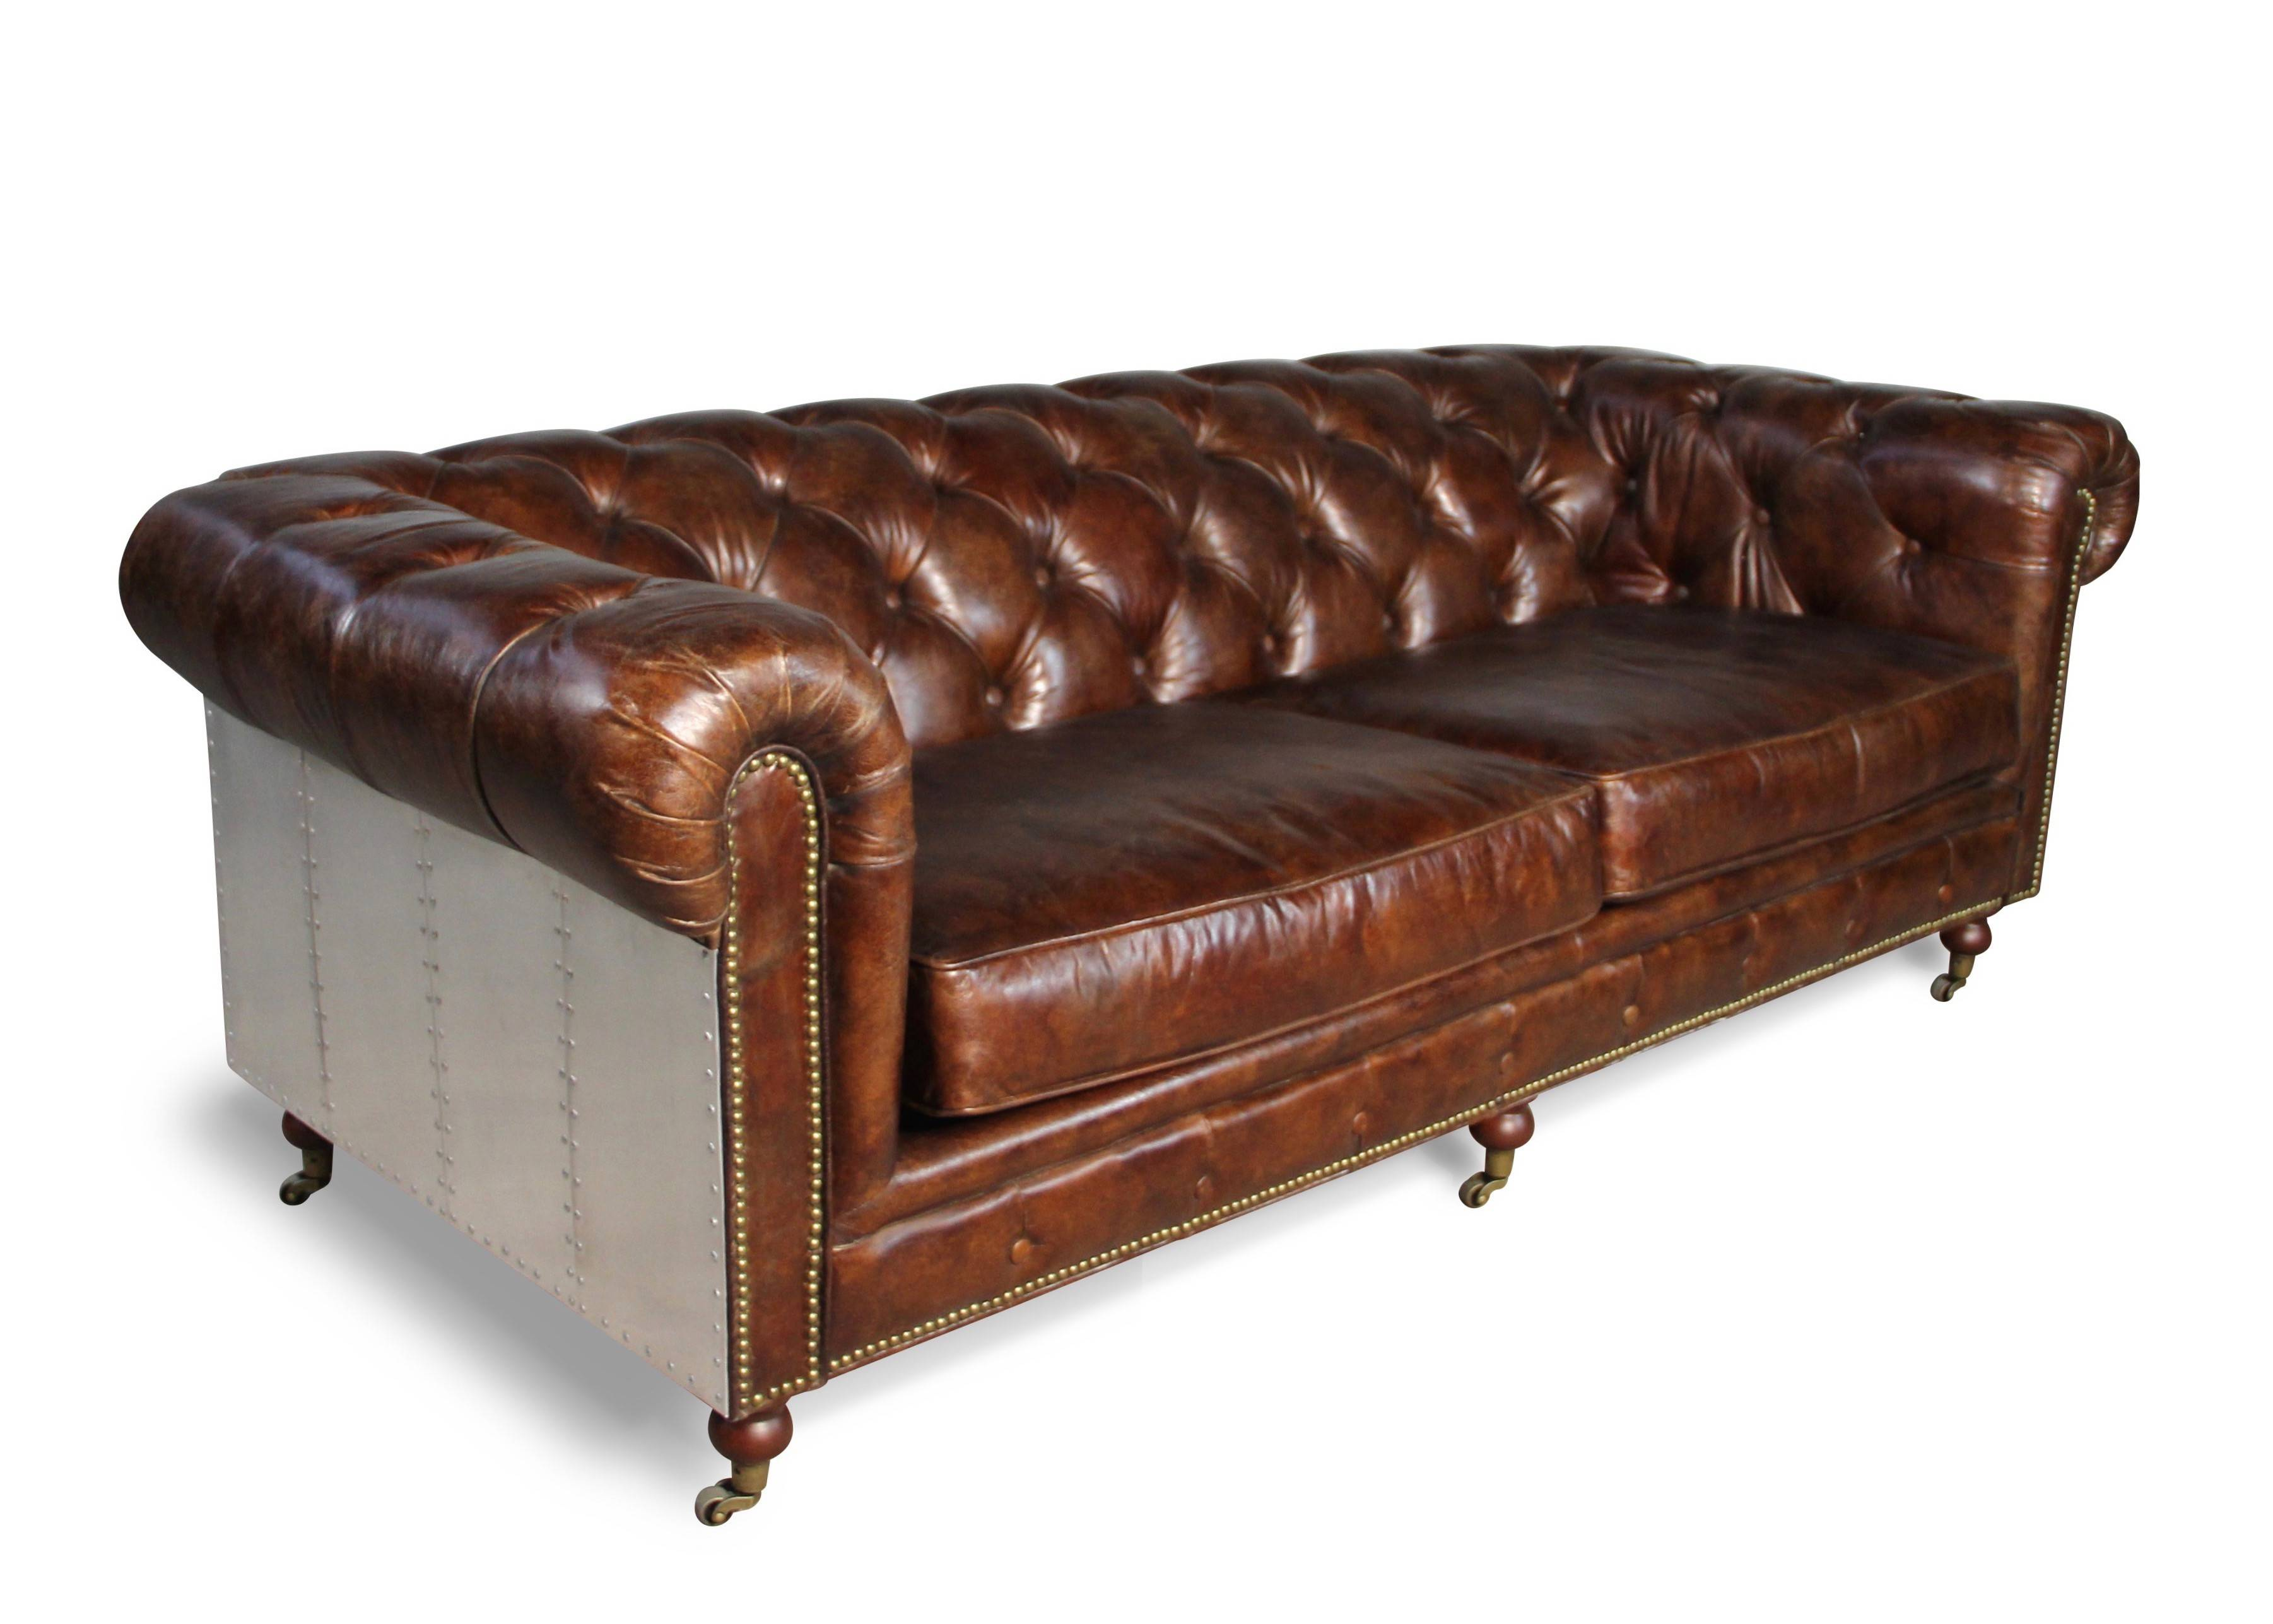 Sofa Chesterfield in Patina Braun Vintage Leder und